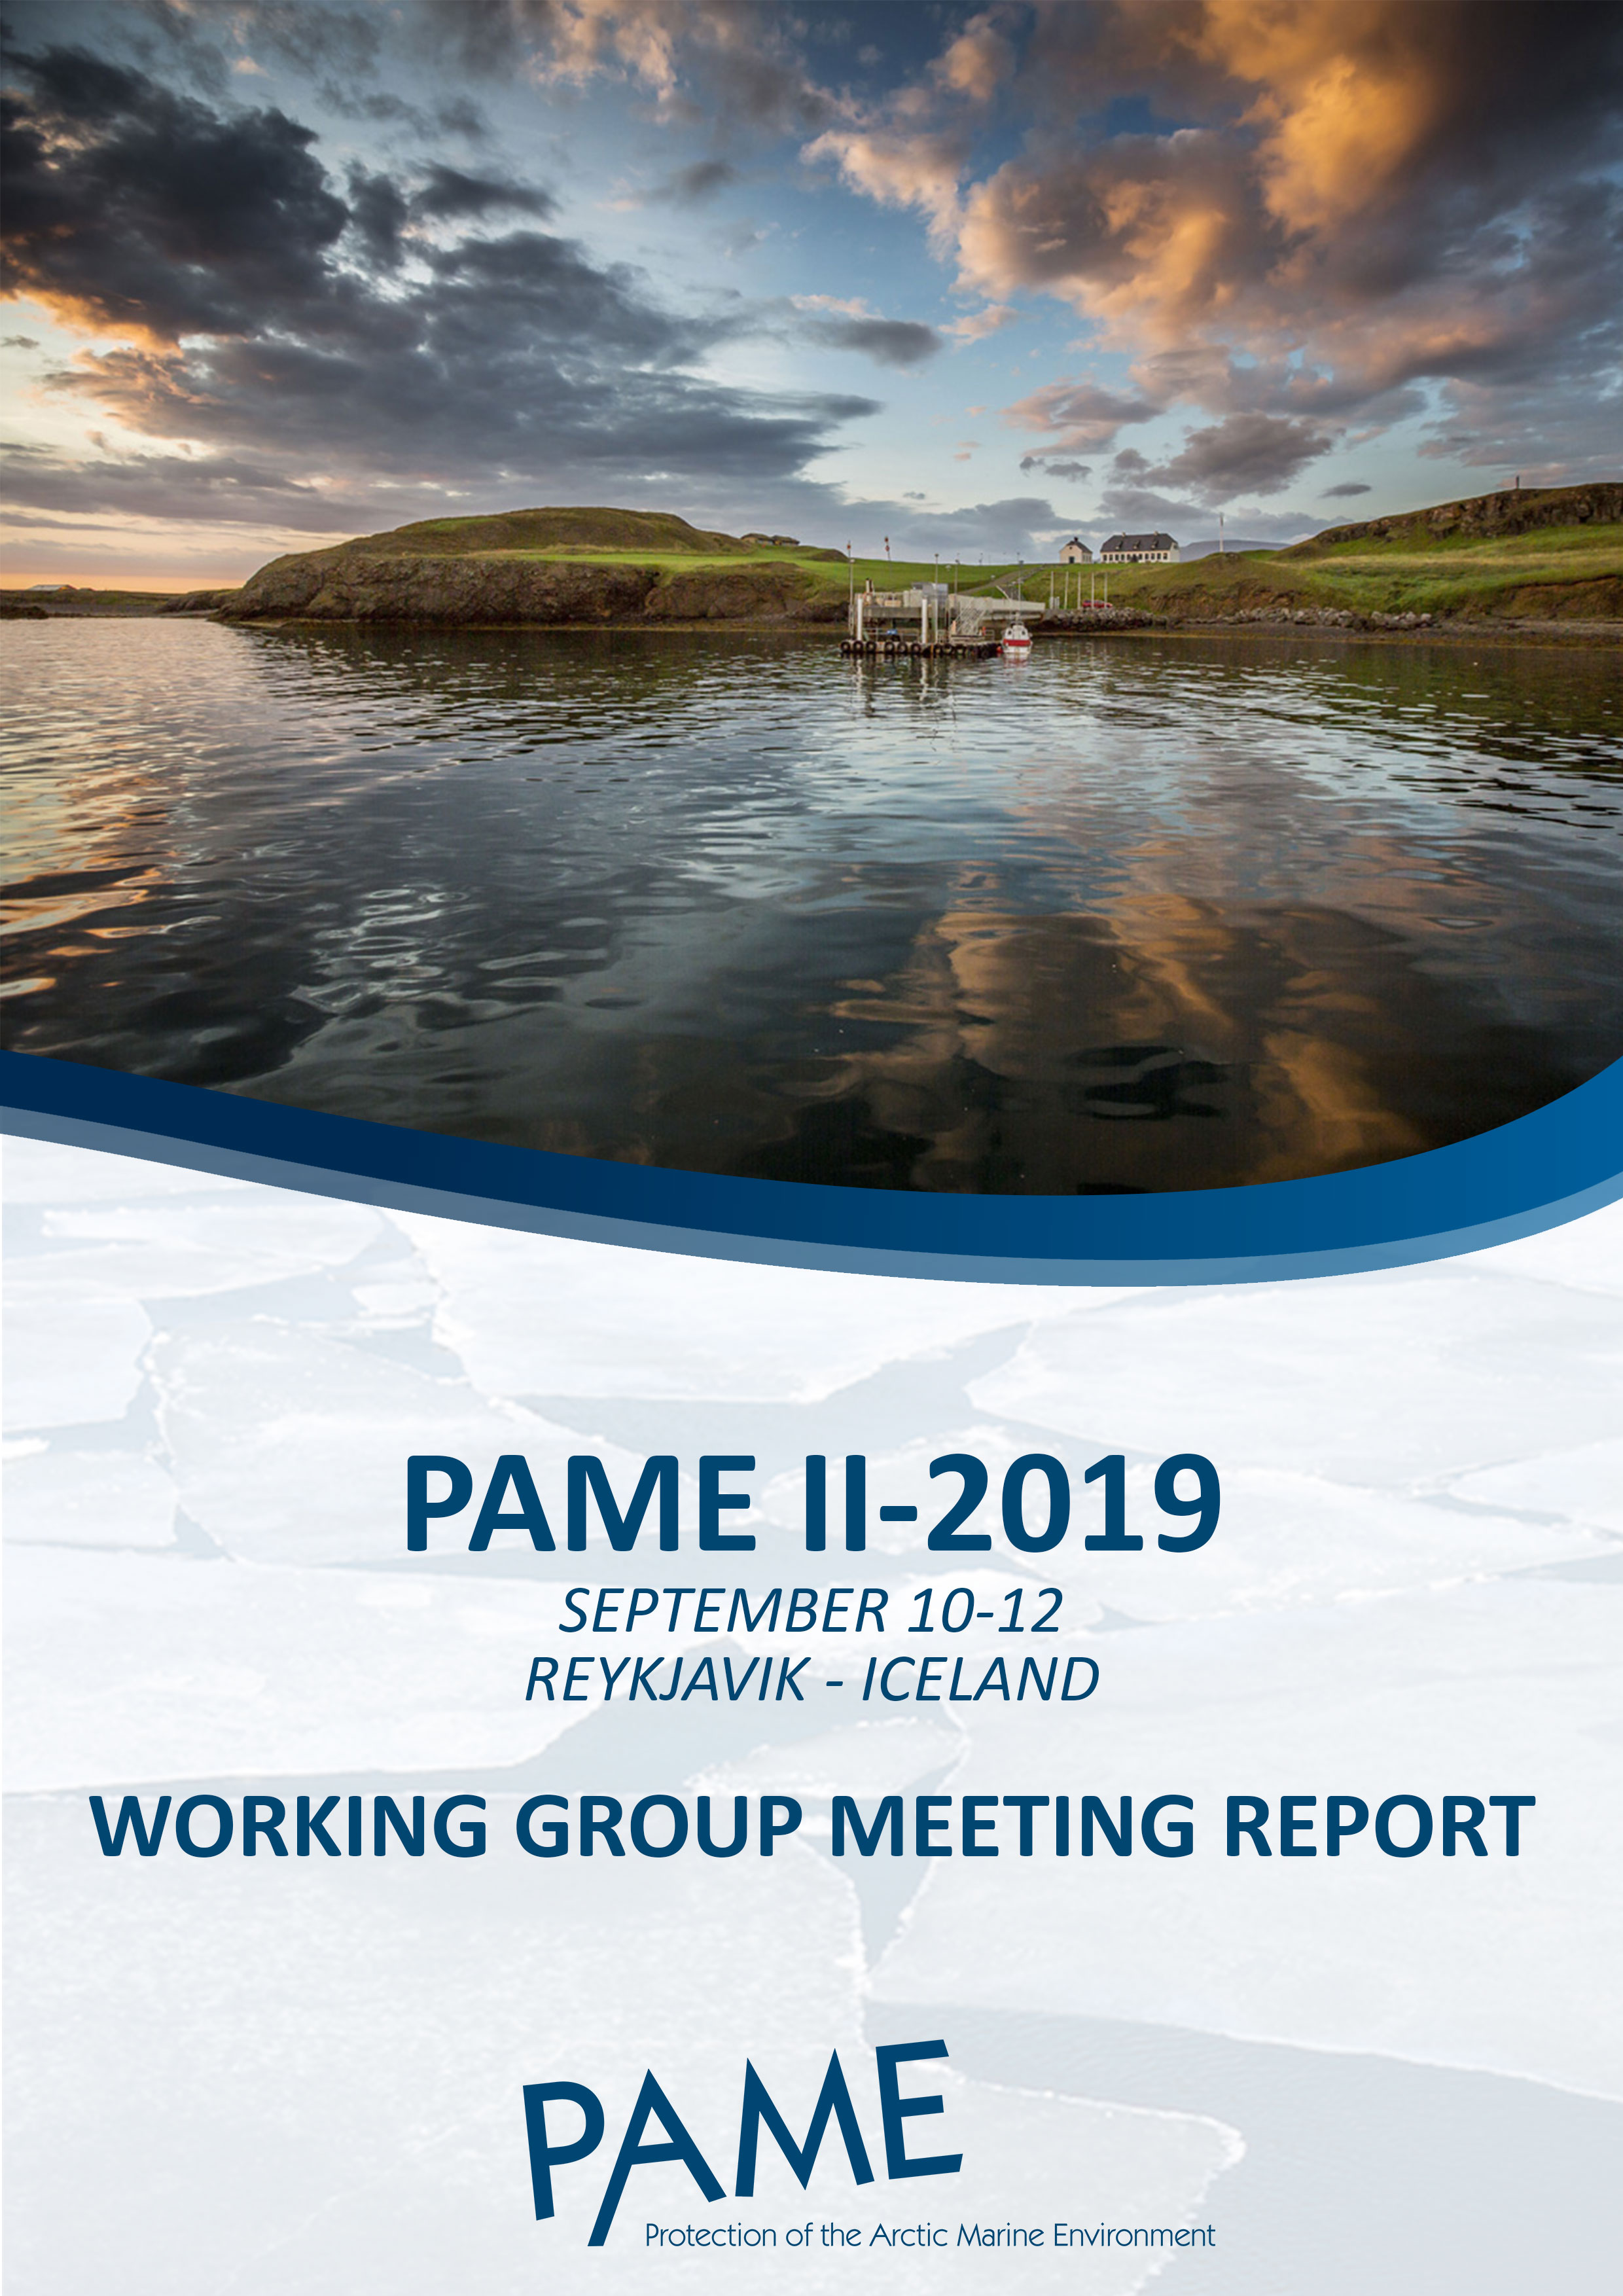 PAME II 2019 Meeting Report